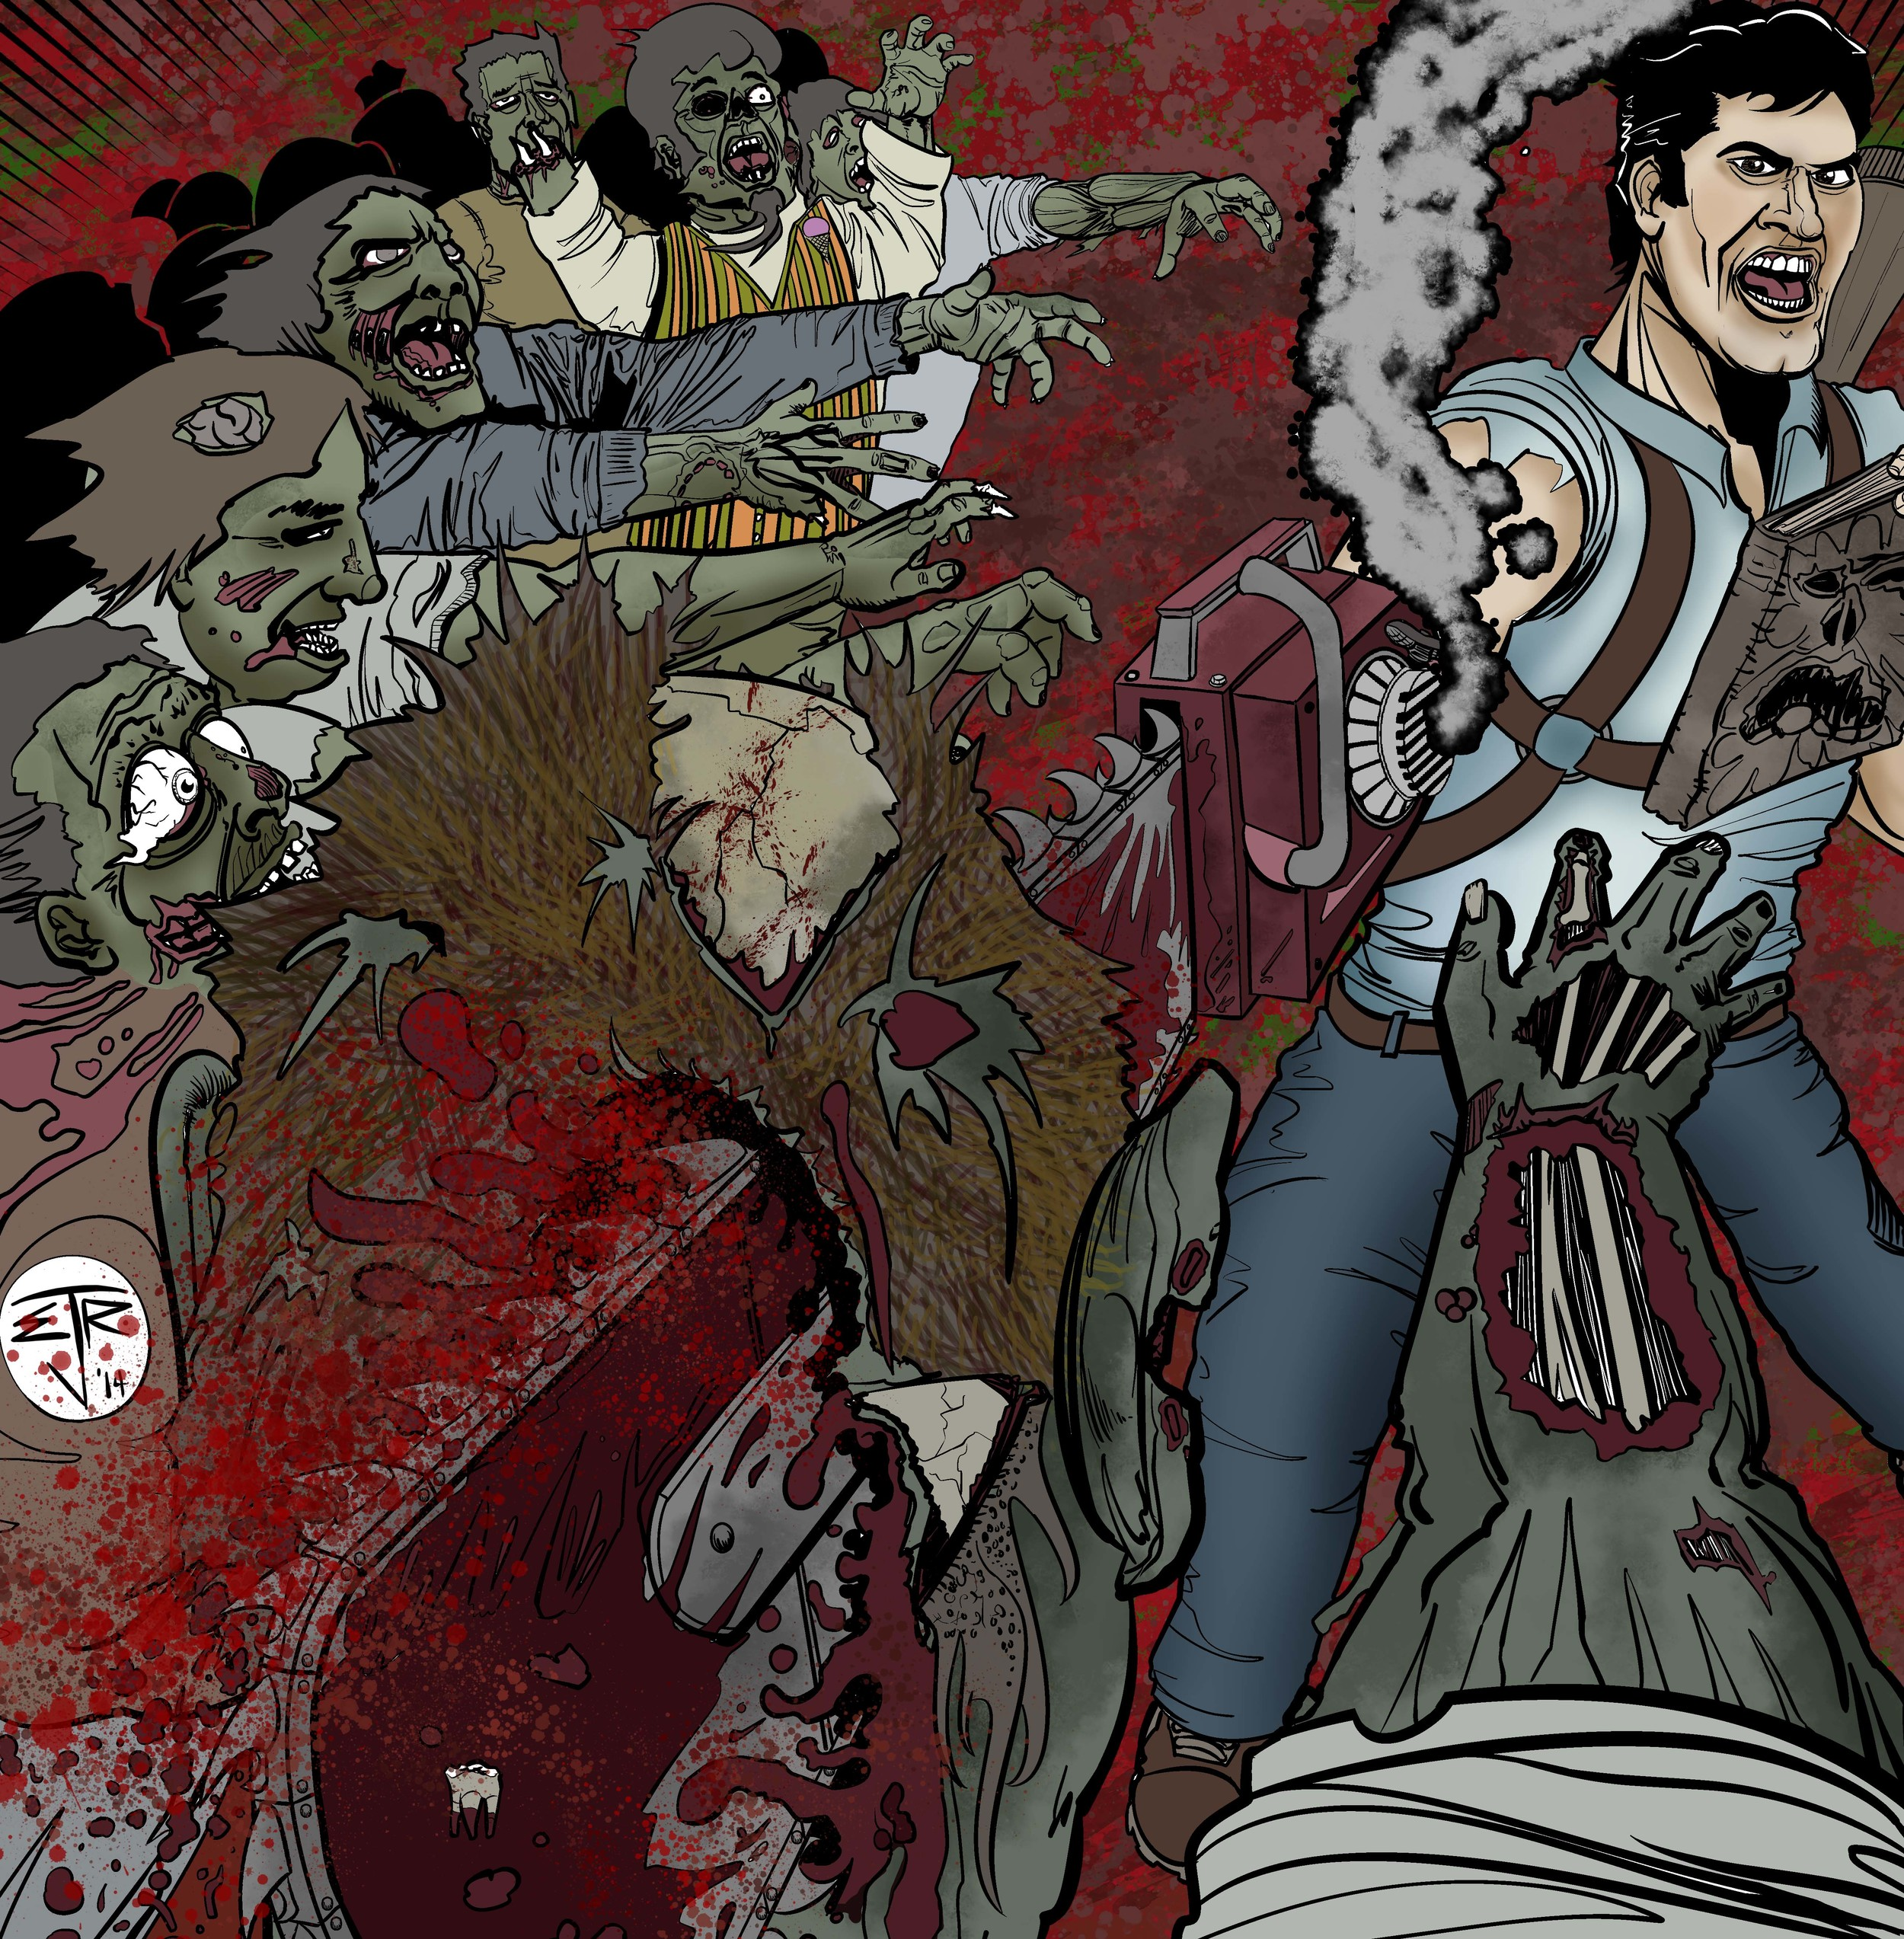 Ash Evil Dead chainsawing zombies by Erik Roggeveen